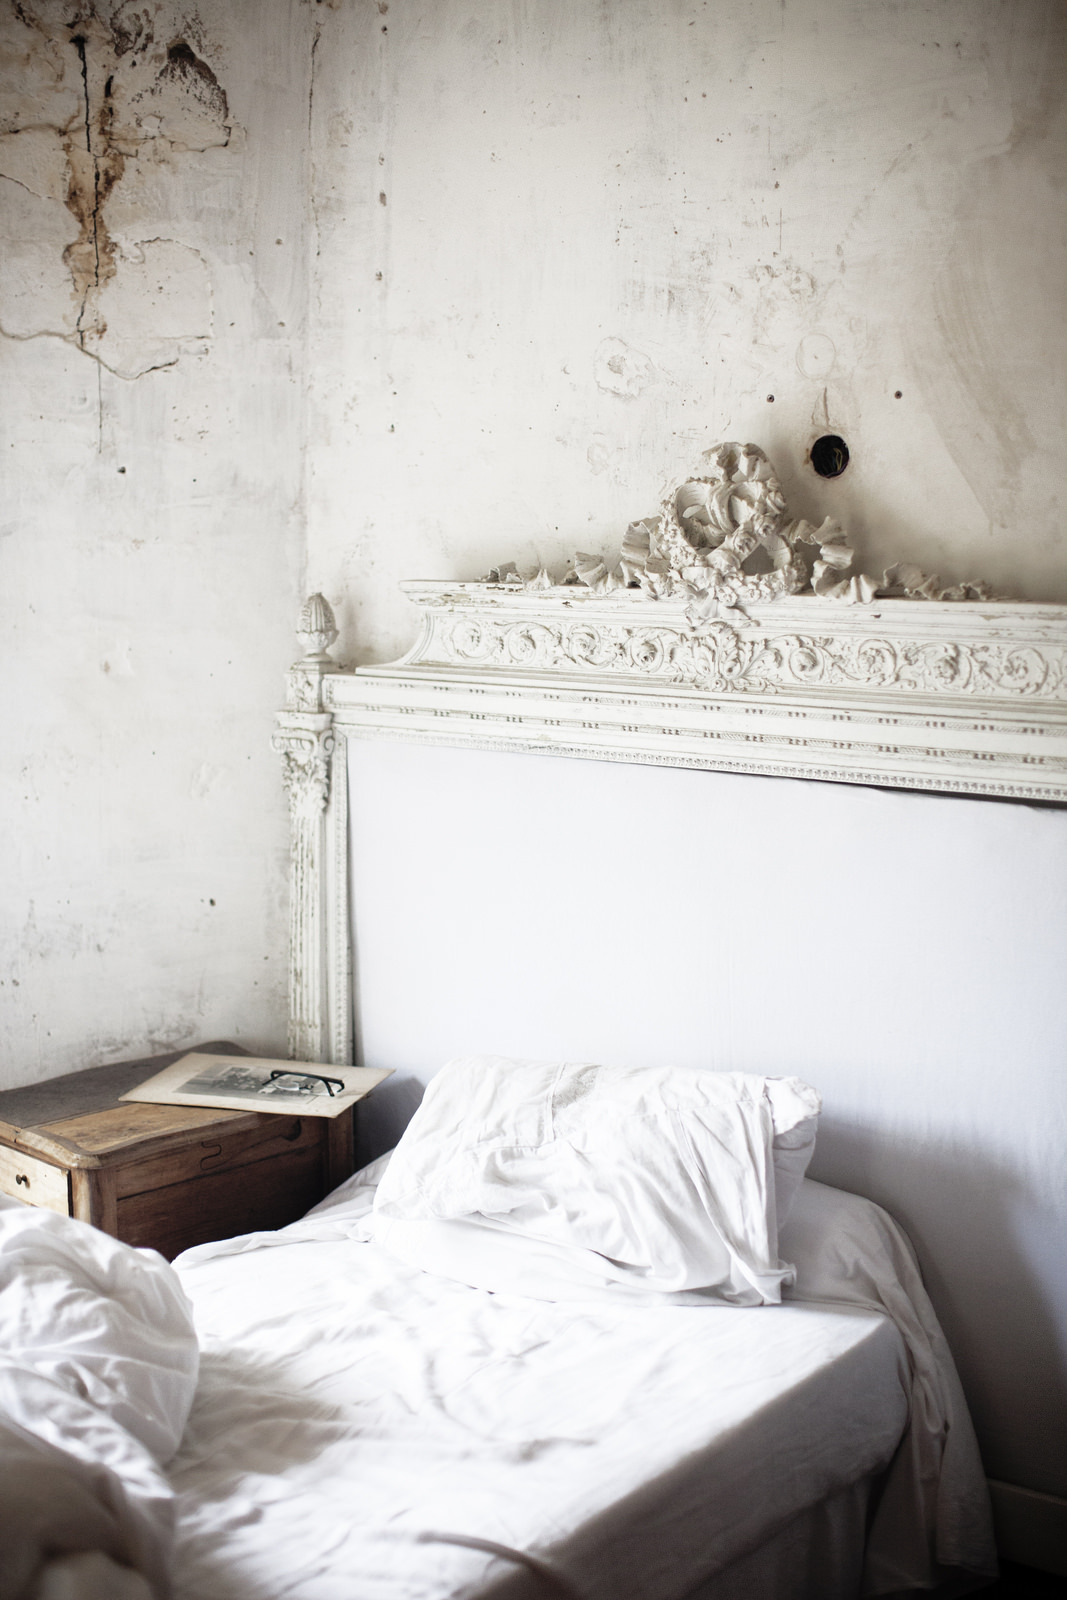 Shabby chic bedside cabinets to lend weathered charm